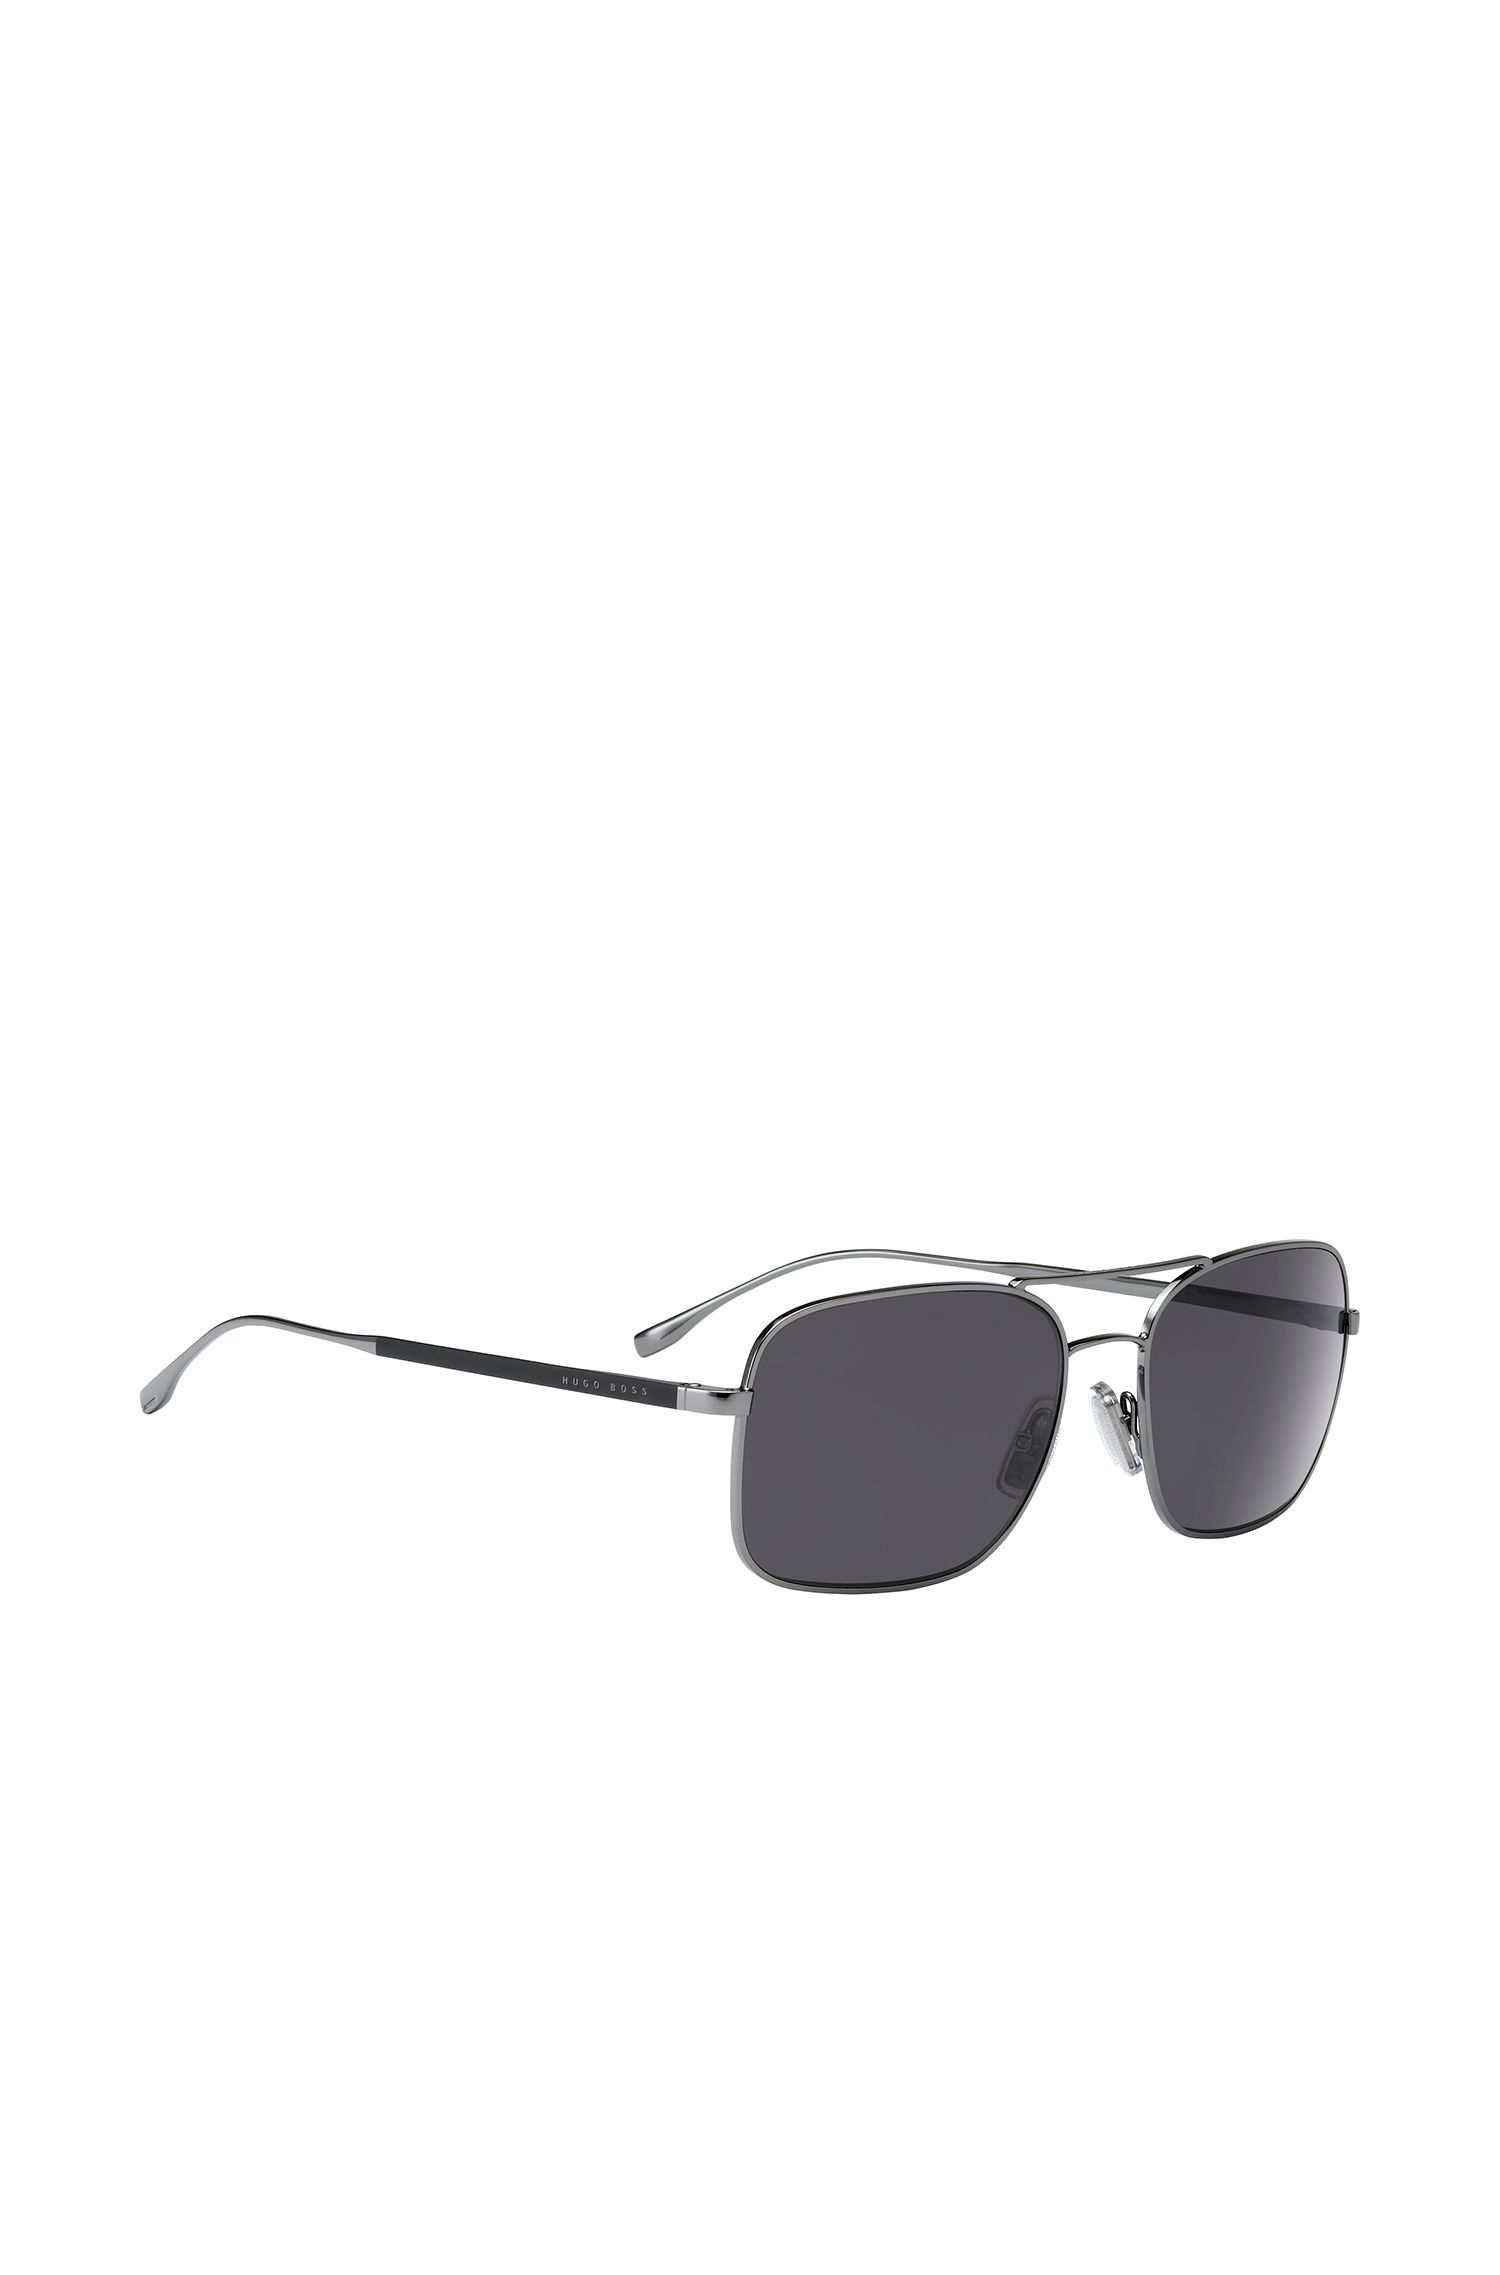 Gray Lens Caravan Sunglasses | BOSS 0781, Assorted-Pre-Pack